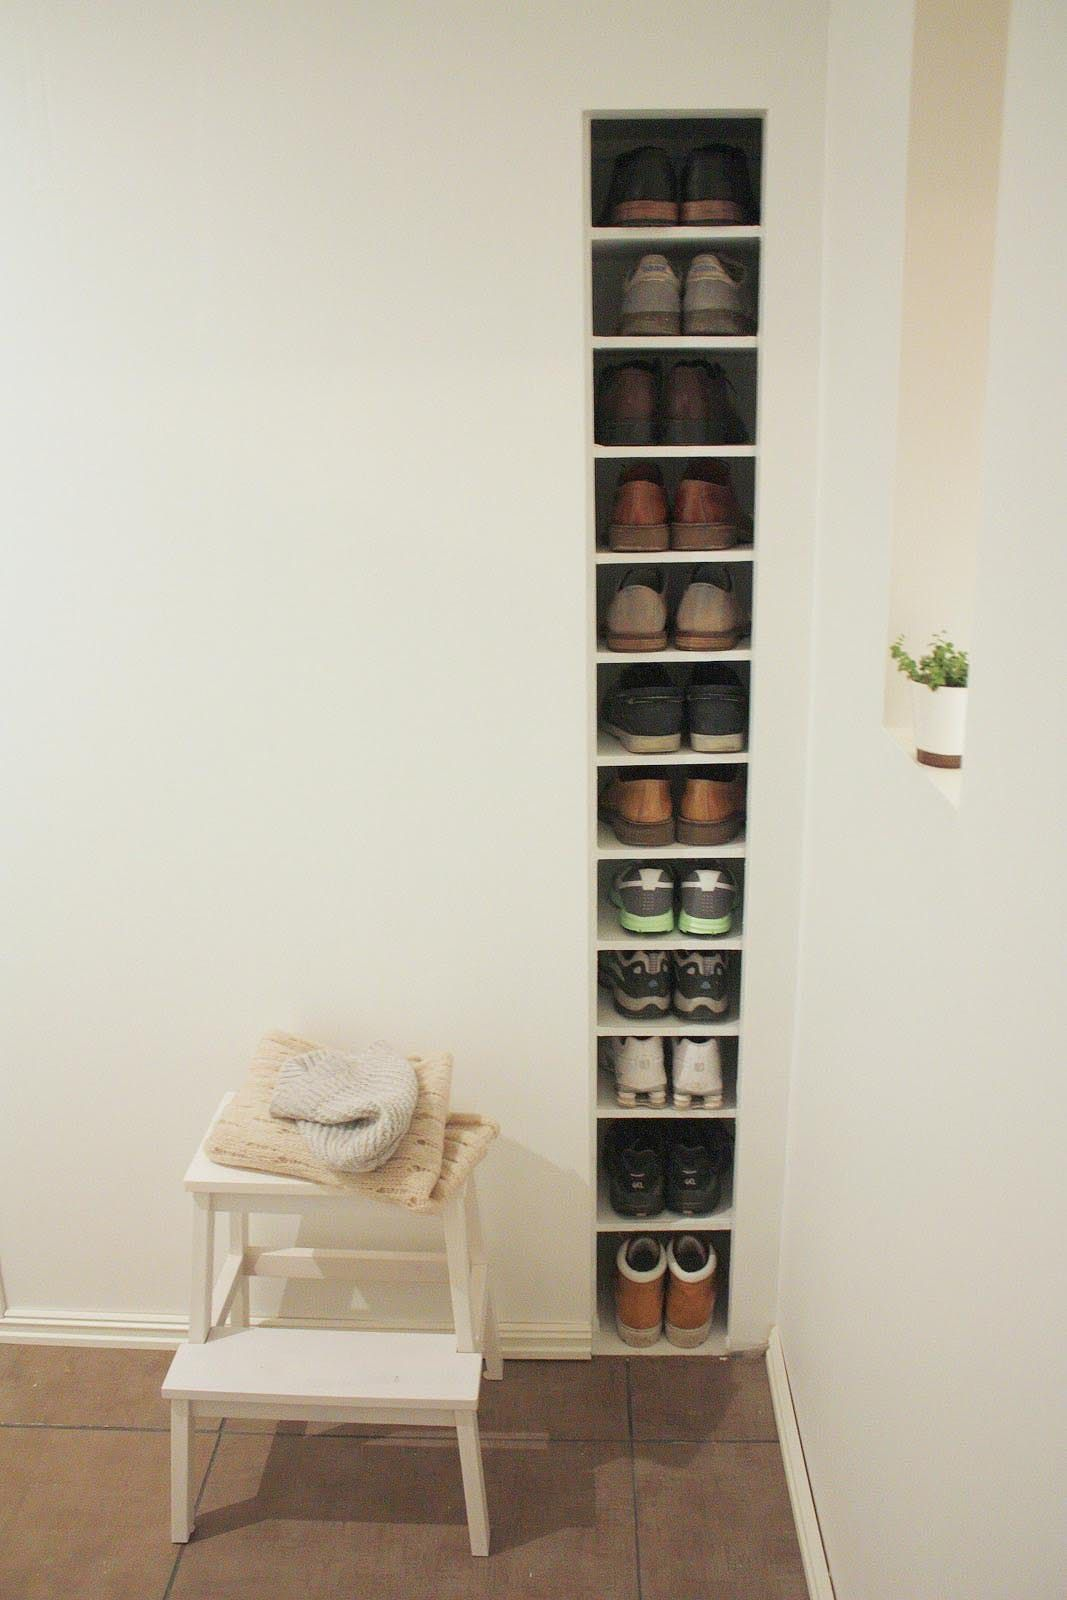 Space saving hallway furniture  Small BuiltIn Storage You Can Squeeze Between Wall Studs  Wall